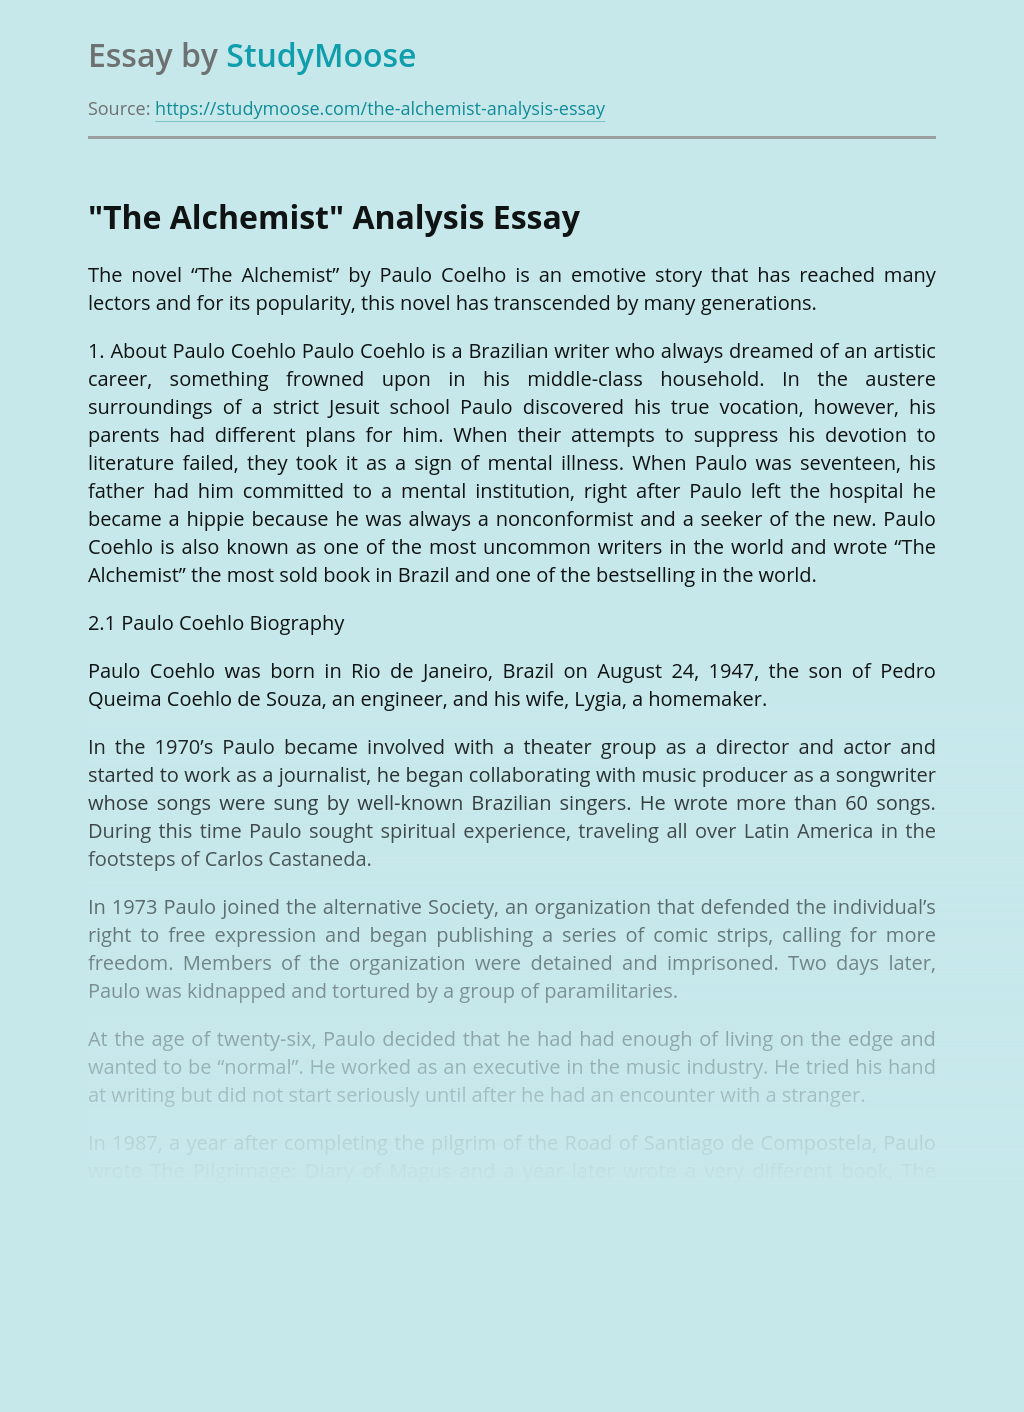 Paulo coelho biography essay sample outline for research paper on global warming